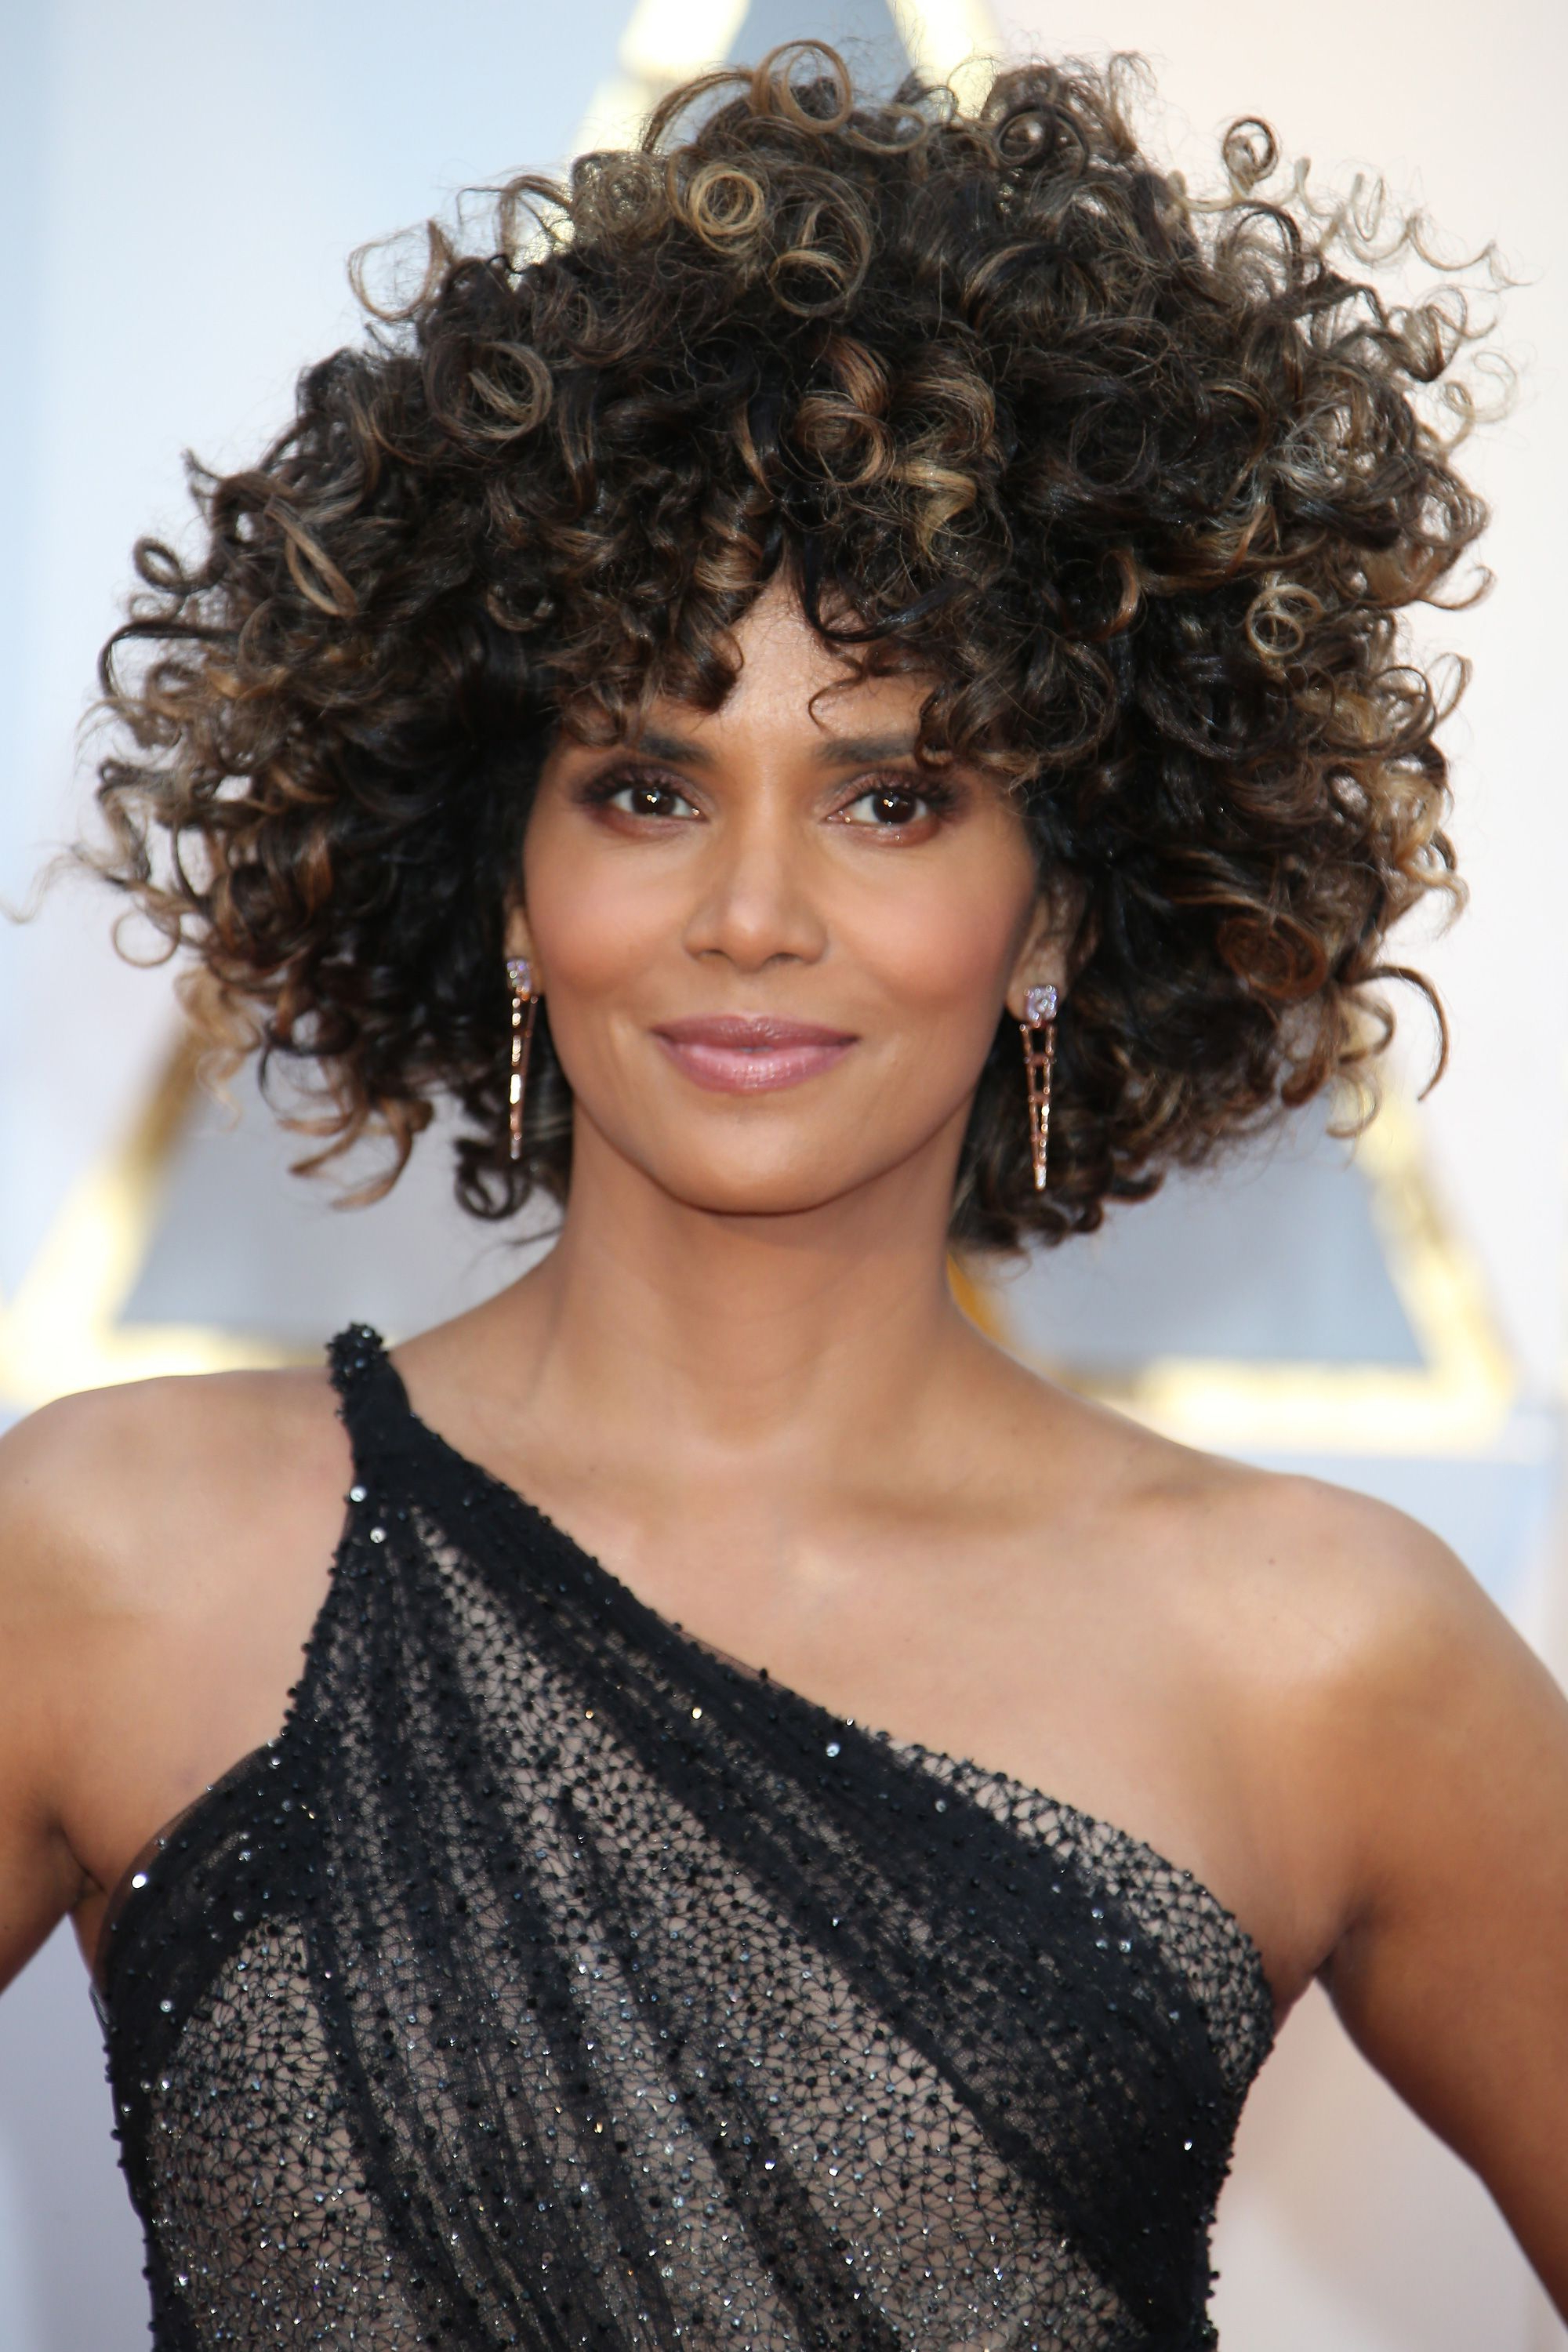 42 Easy Curly Hairstyles – Short, Medium, And Long Haircuts For Pertaining To Current Medium Haircuts For Relaxed Hair (Gallery 19 of 20)